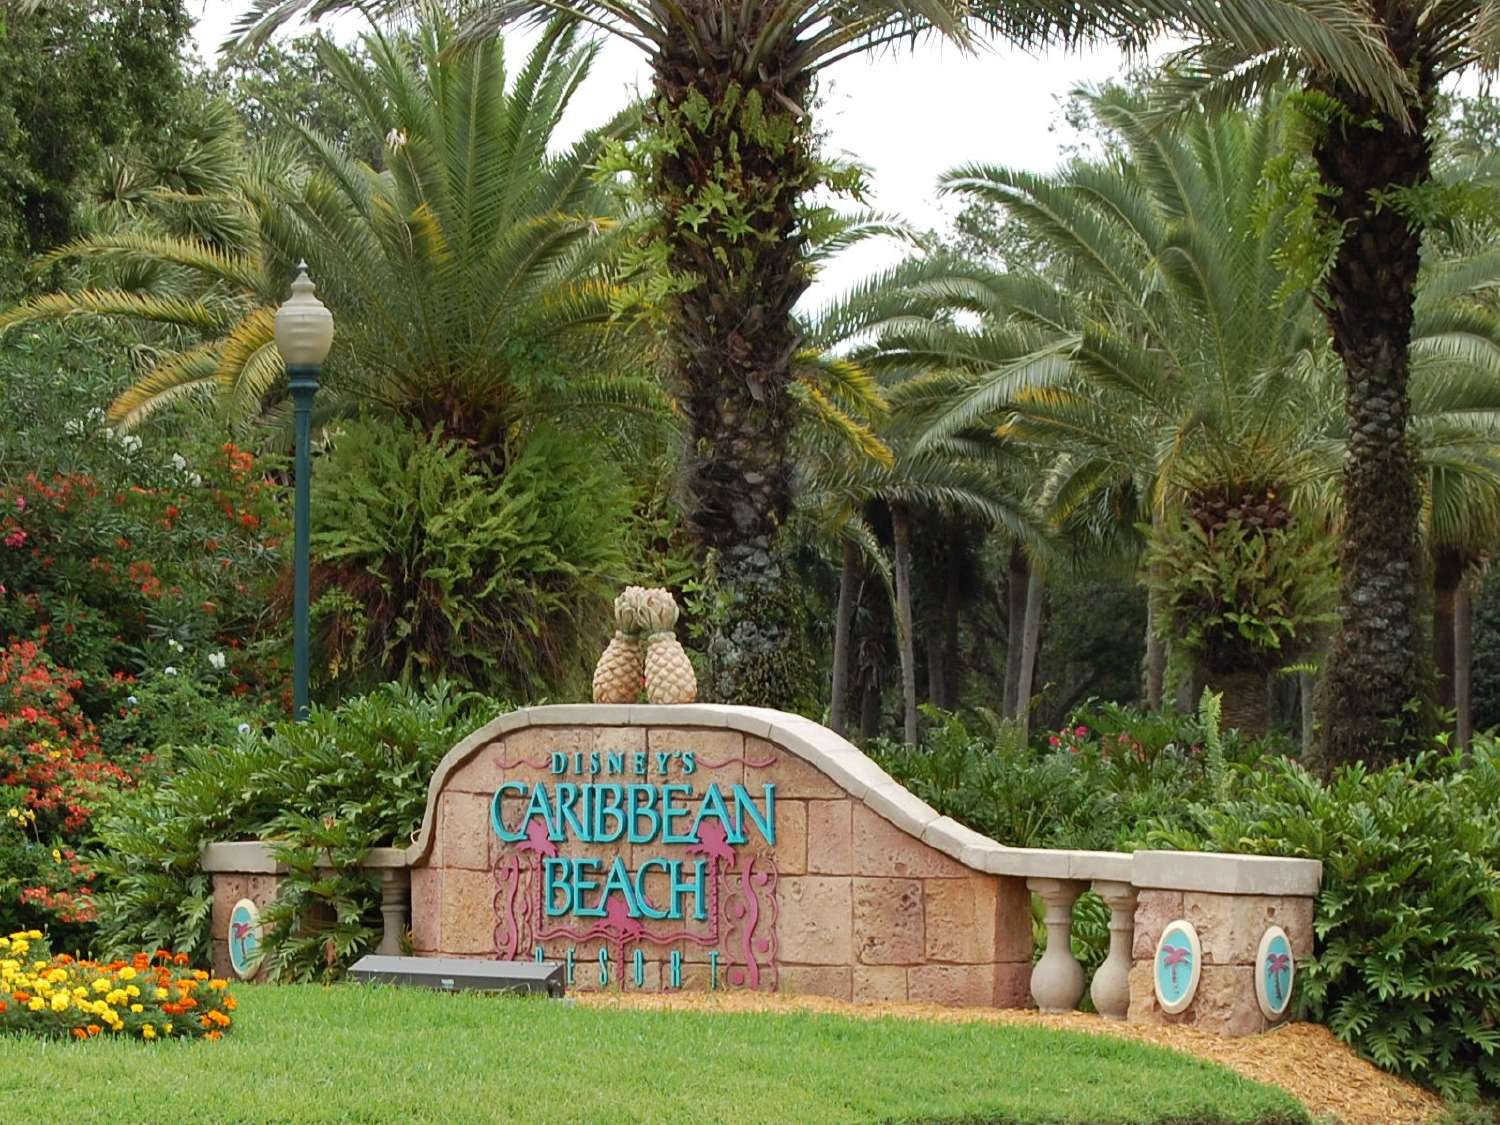 Disney's-Caribbean-Beach-Resort-sign.jpg